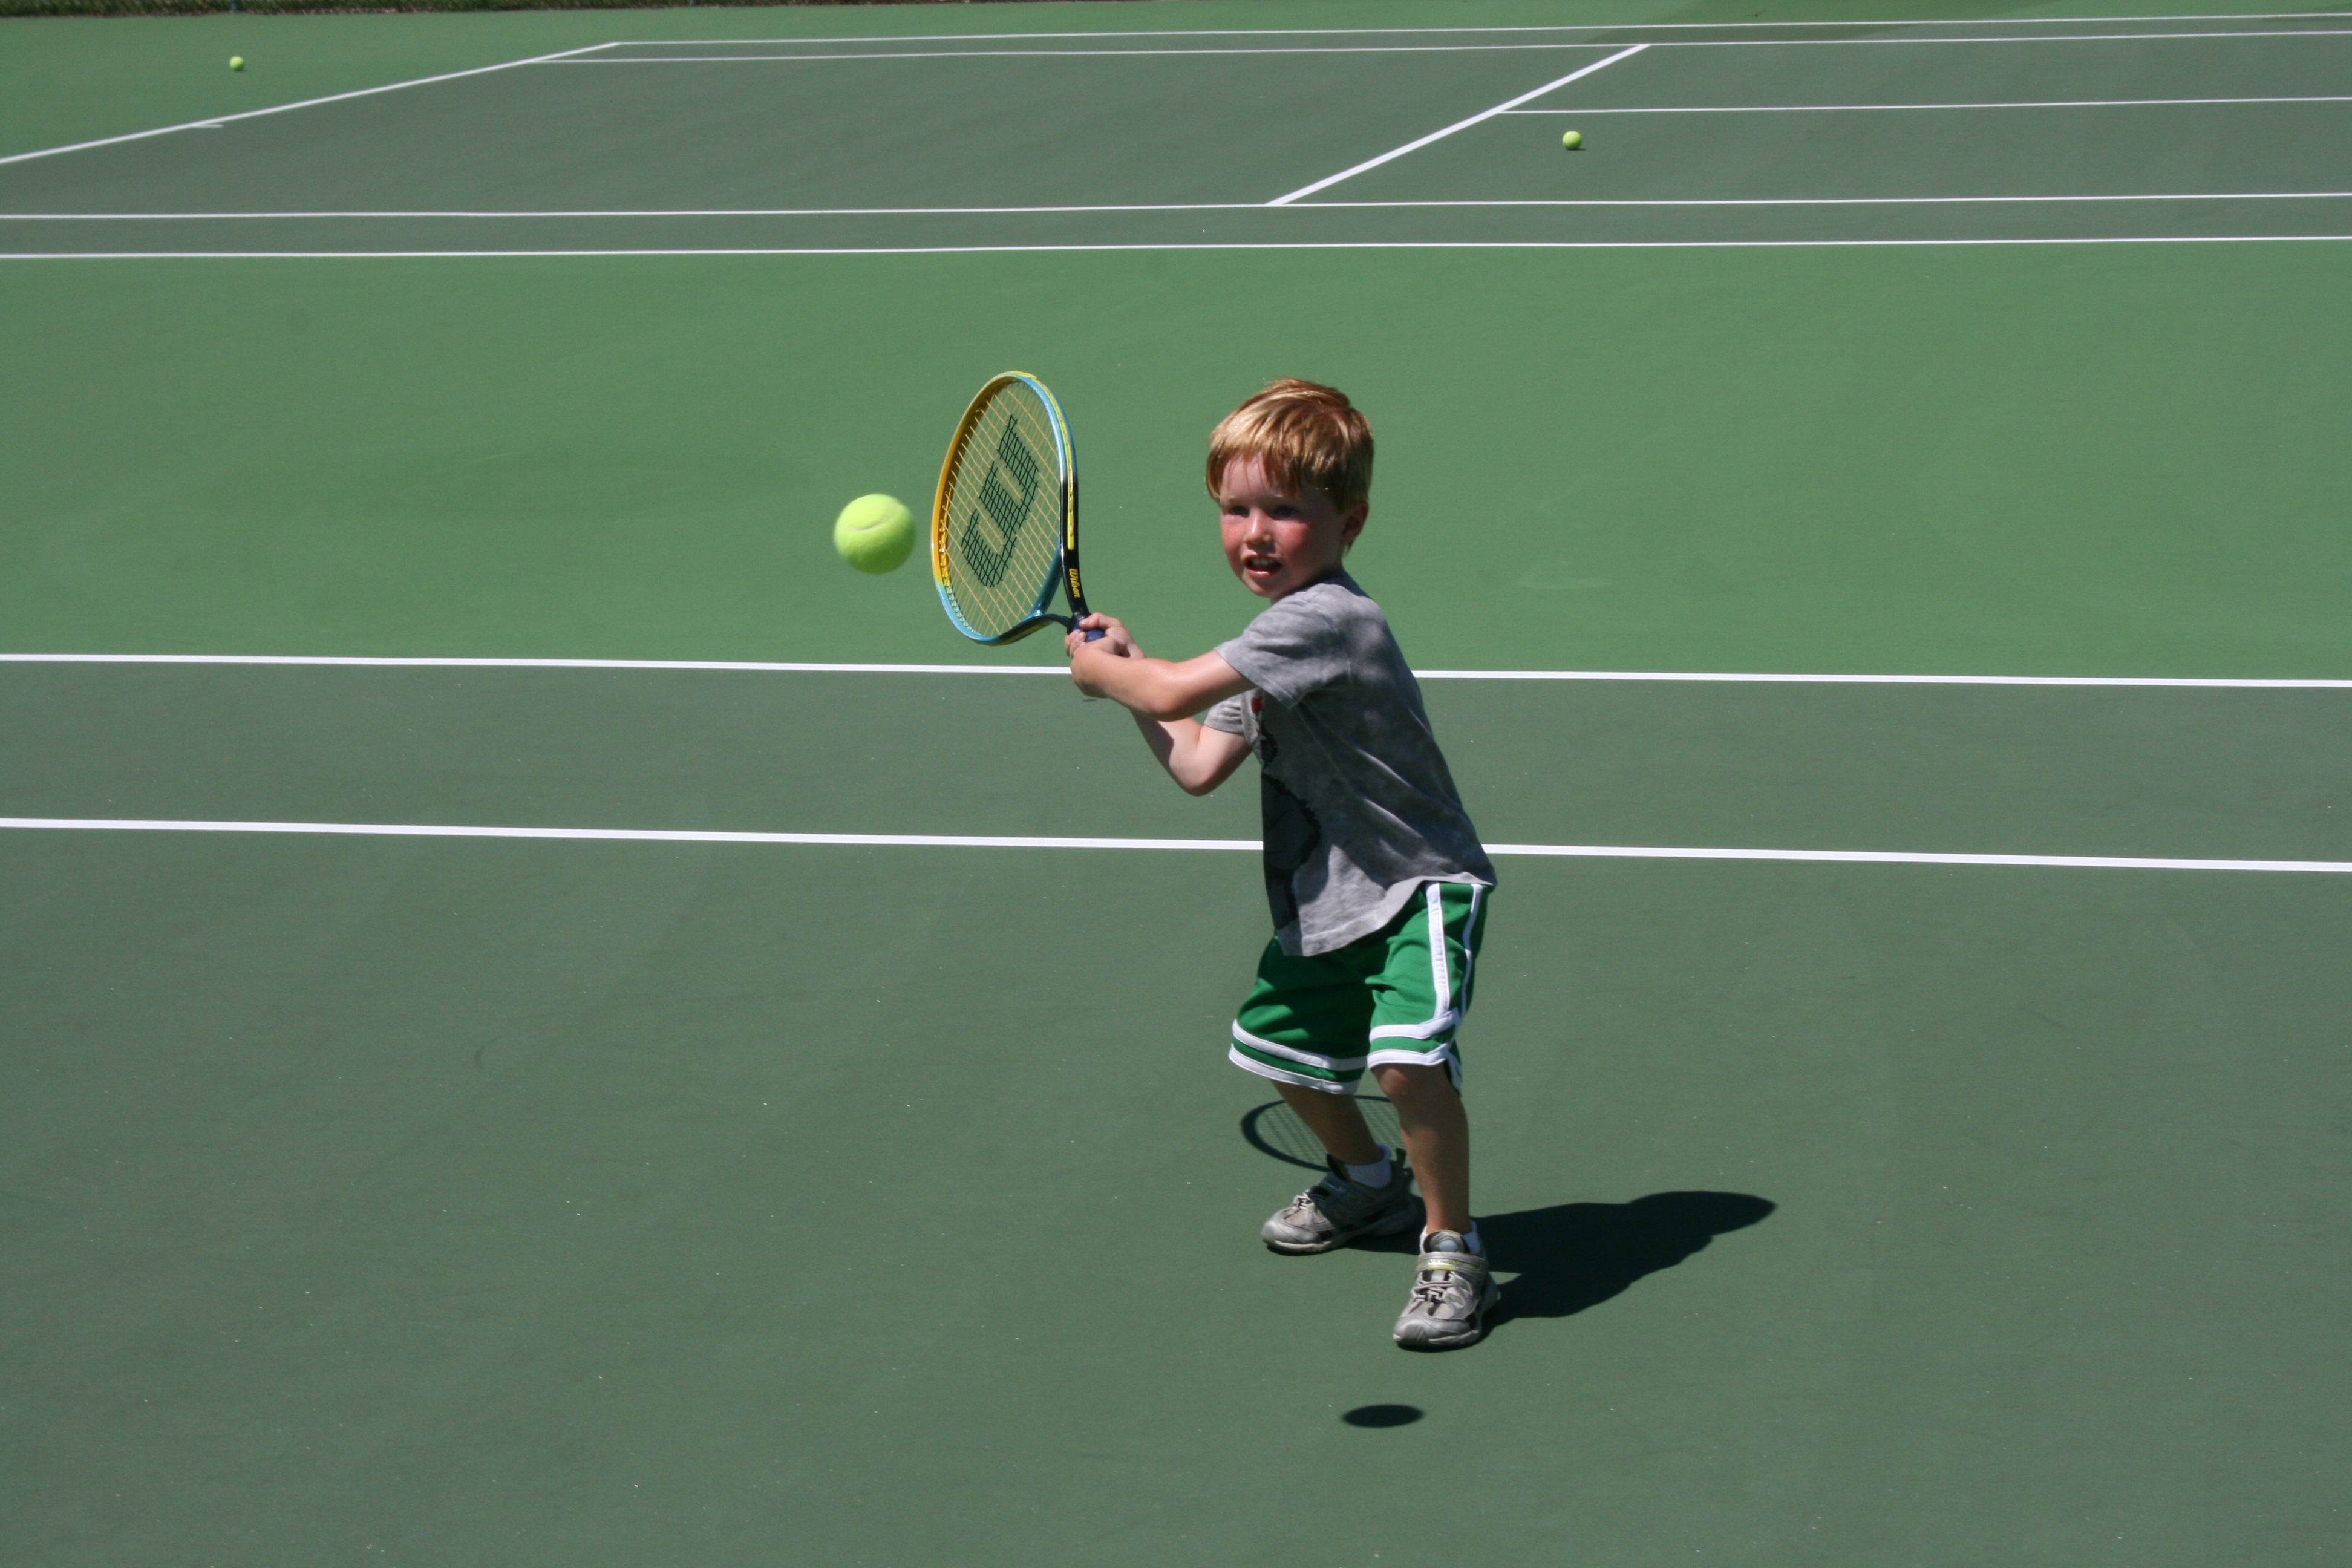 Tennis For Toddlers Soundview Sports Camp Adds Program For Toddlers Nymetroparents